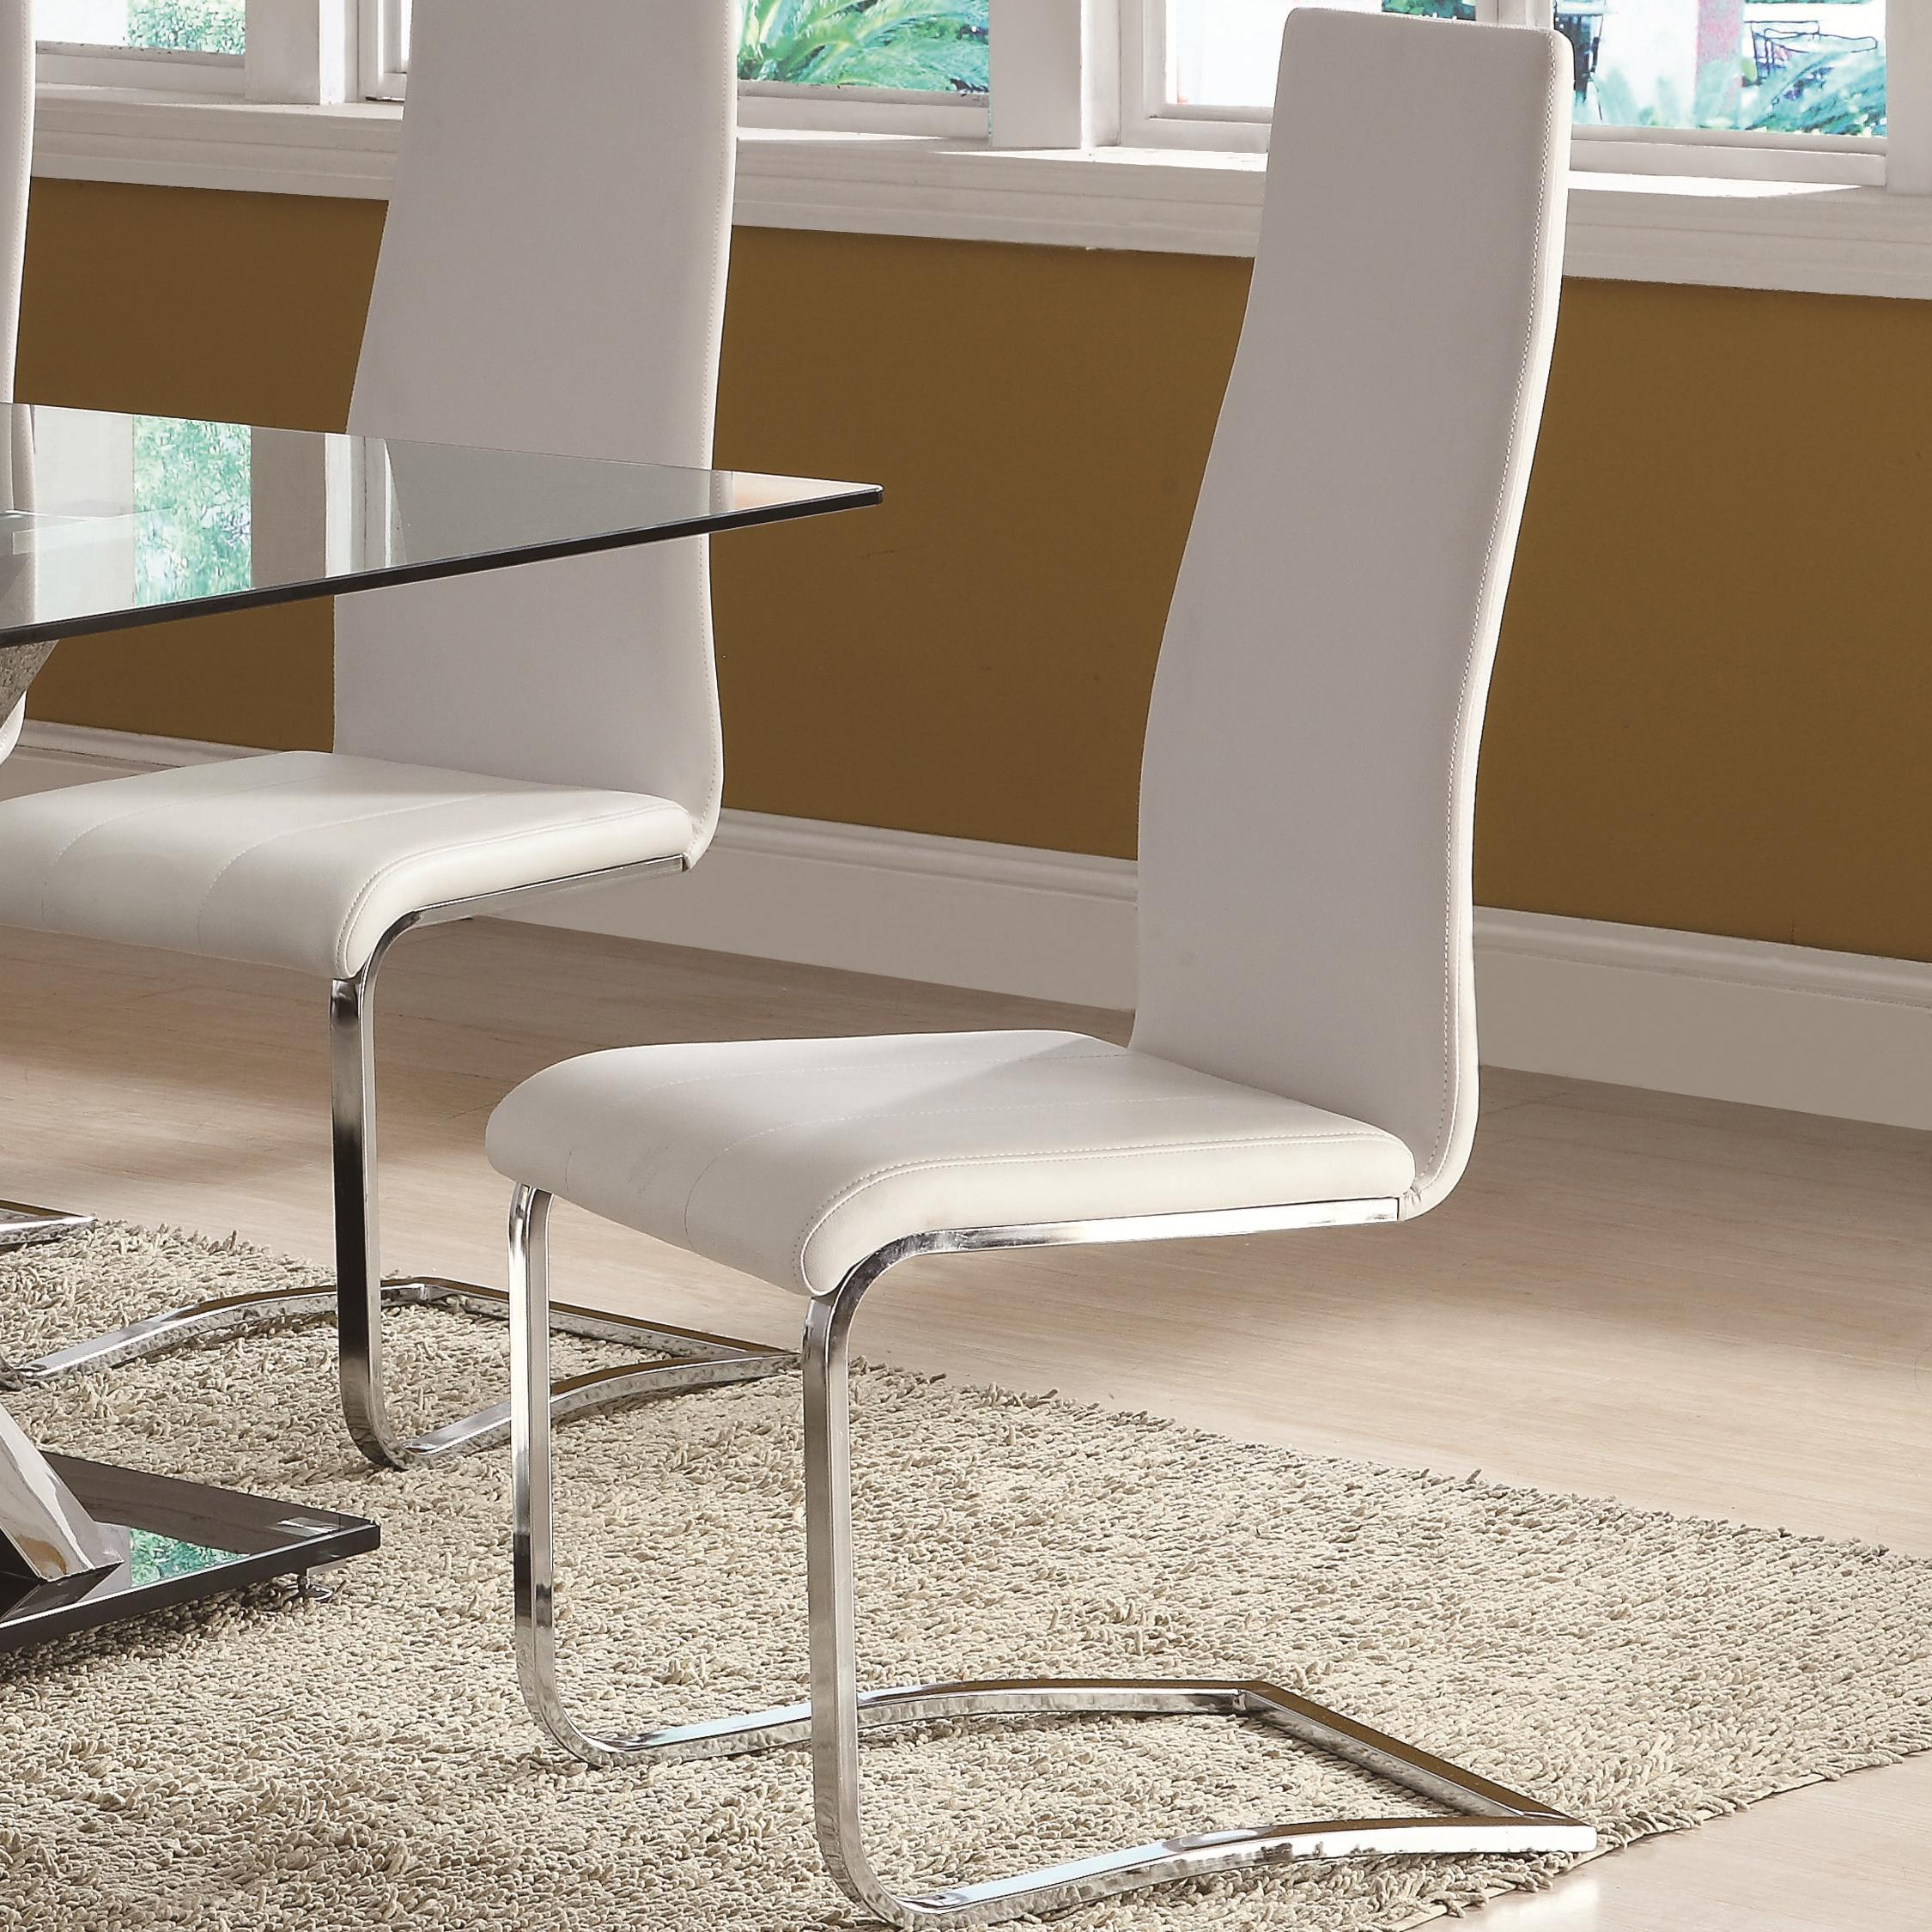 Leather Dining Room Chairs Modern Dining White Faux Leather Dining Chair With Chrome Legs By Coaster At Dunk Bright Furniture